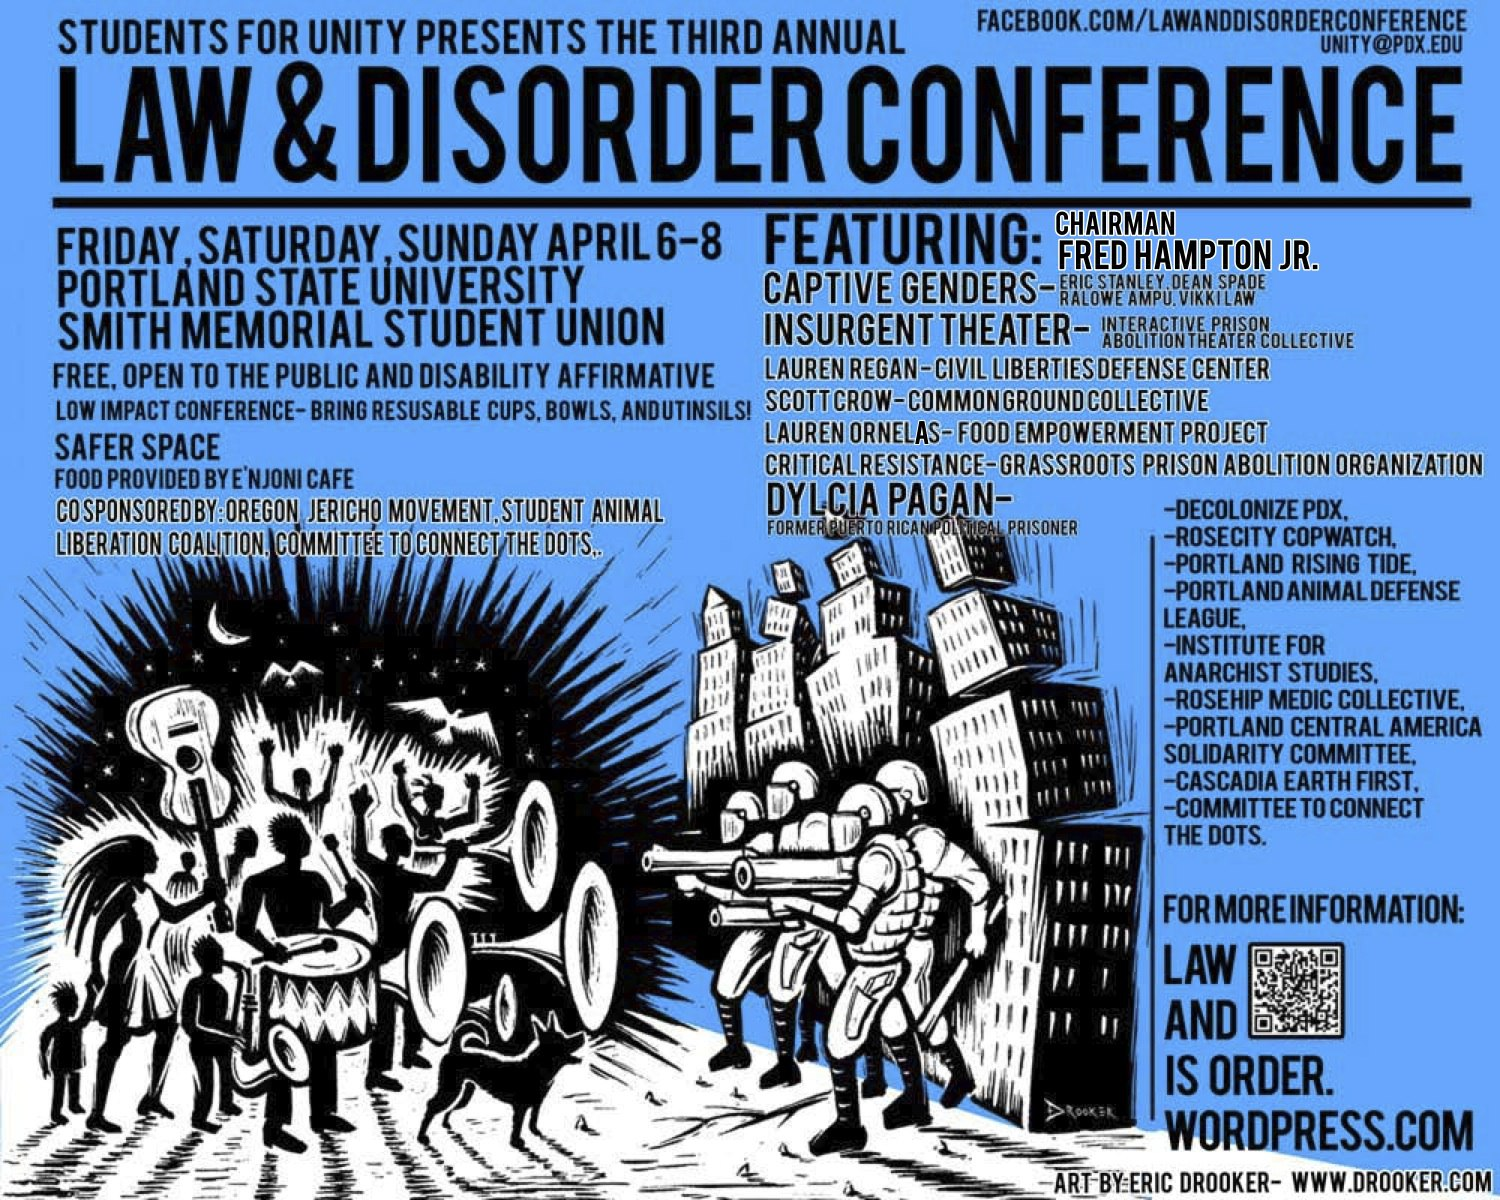 The 3rd Annual Law & Disorder Conference